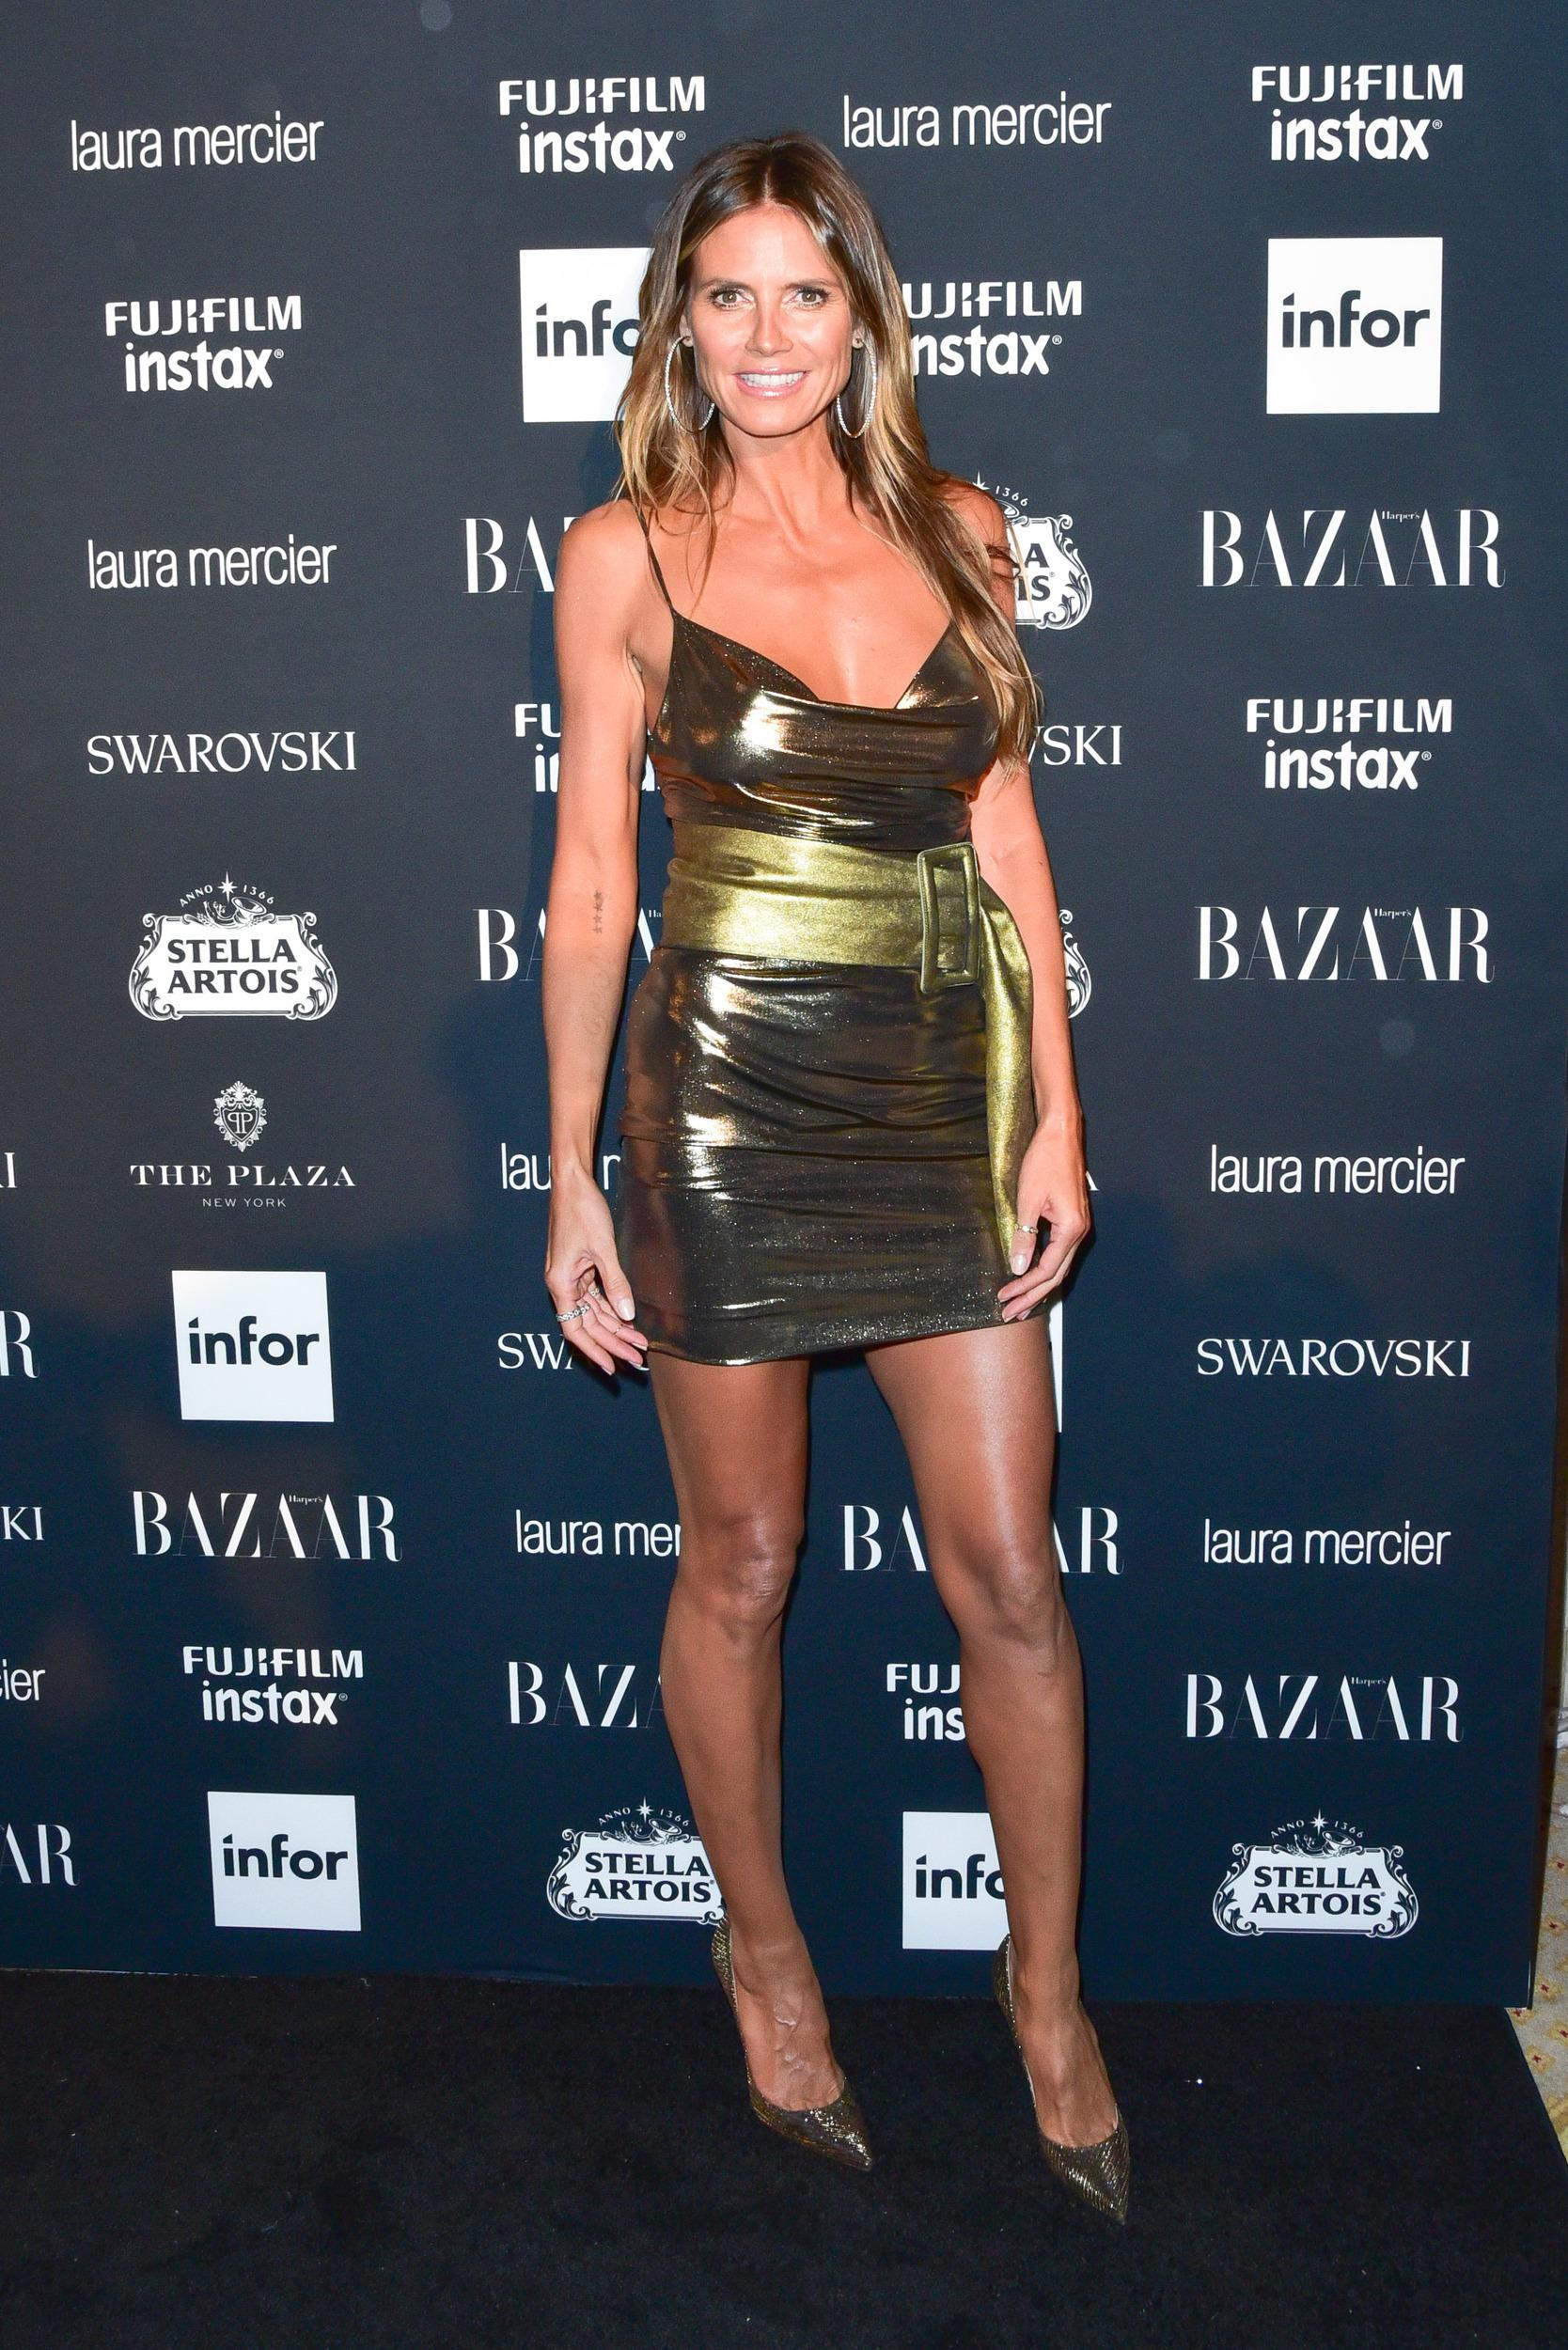 NEW YORK, NY - SEPTEMBER 08:  Heidi Klum attends 2017 Harper's Bazaar Icons at The Plaza Hotel on September 8, 2017 in New York City.  (Photo by Sean Zanni/Patrick McMullan via Getty Images)